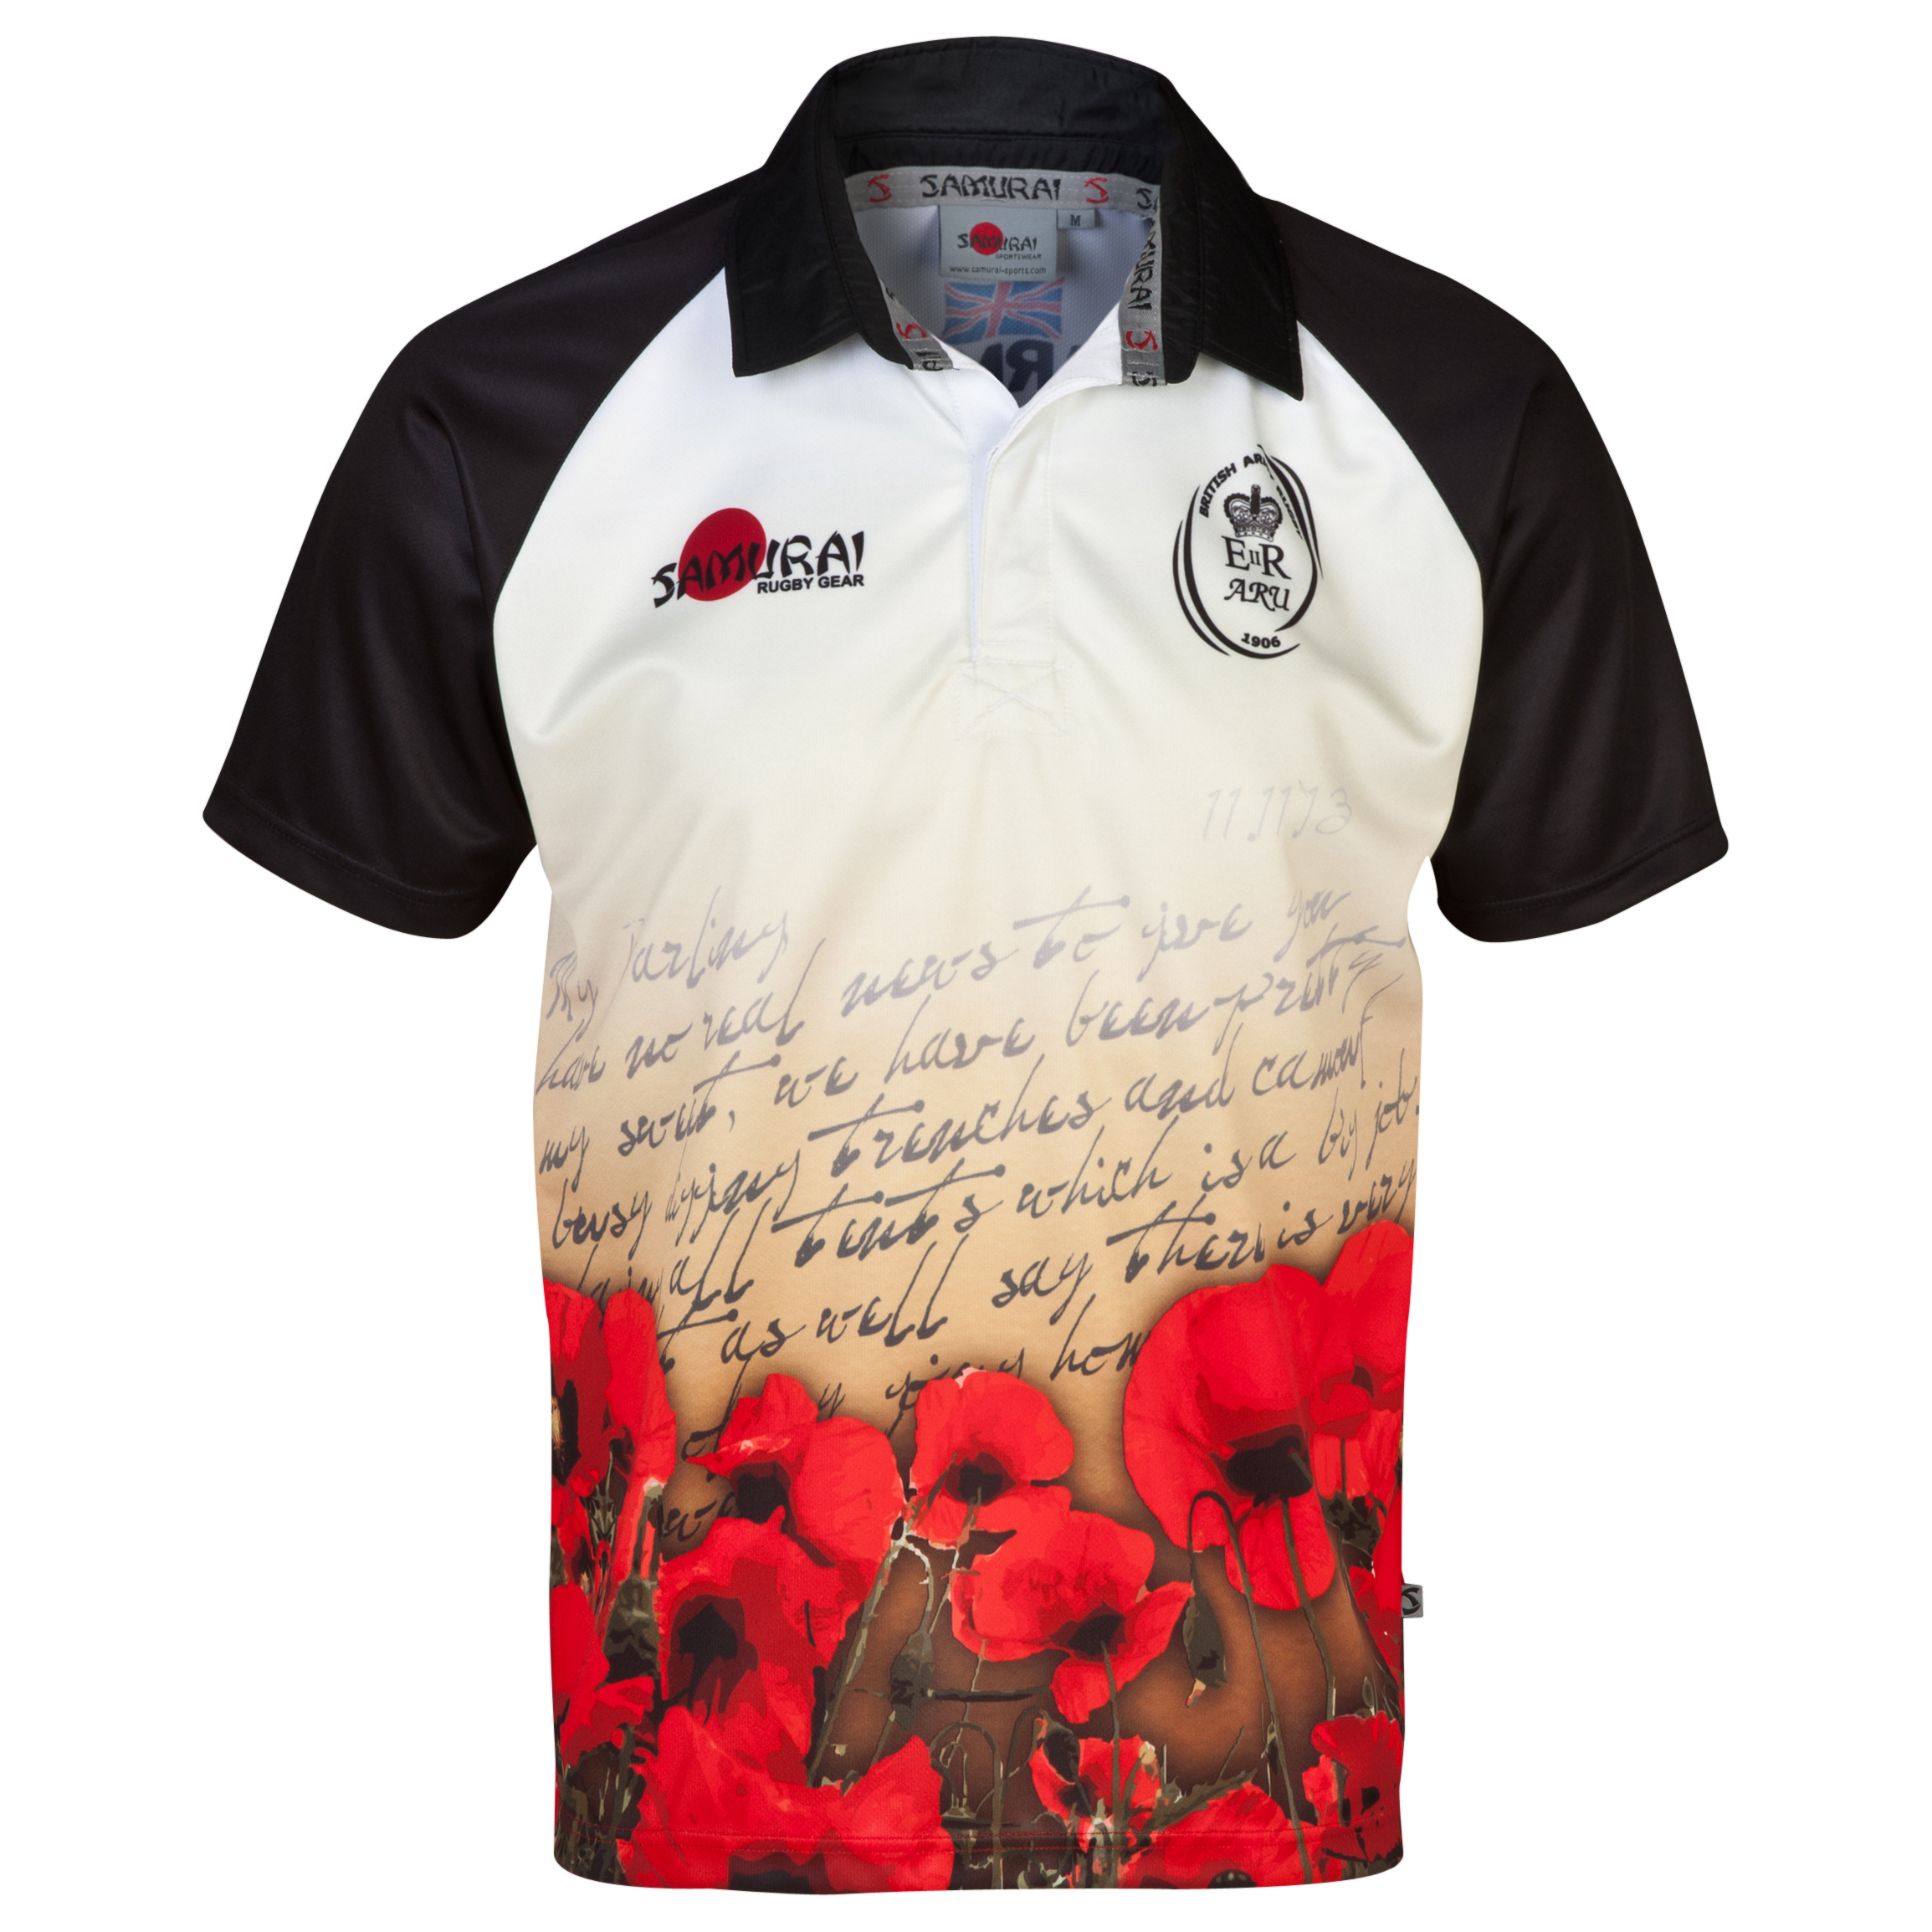 Army Rugby Union Letter Poppy Shirt 2014 - Black/White/Red Black